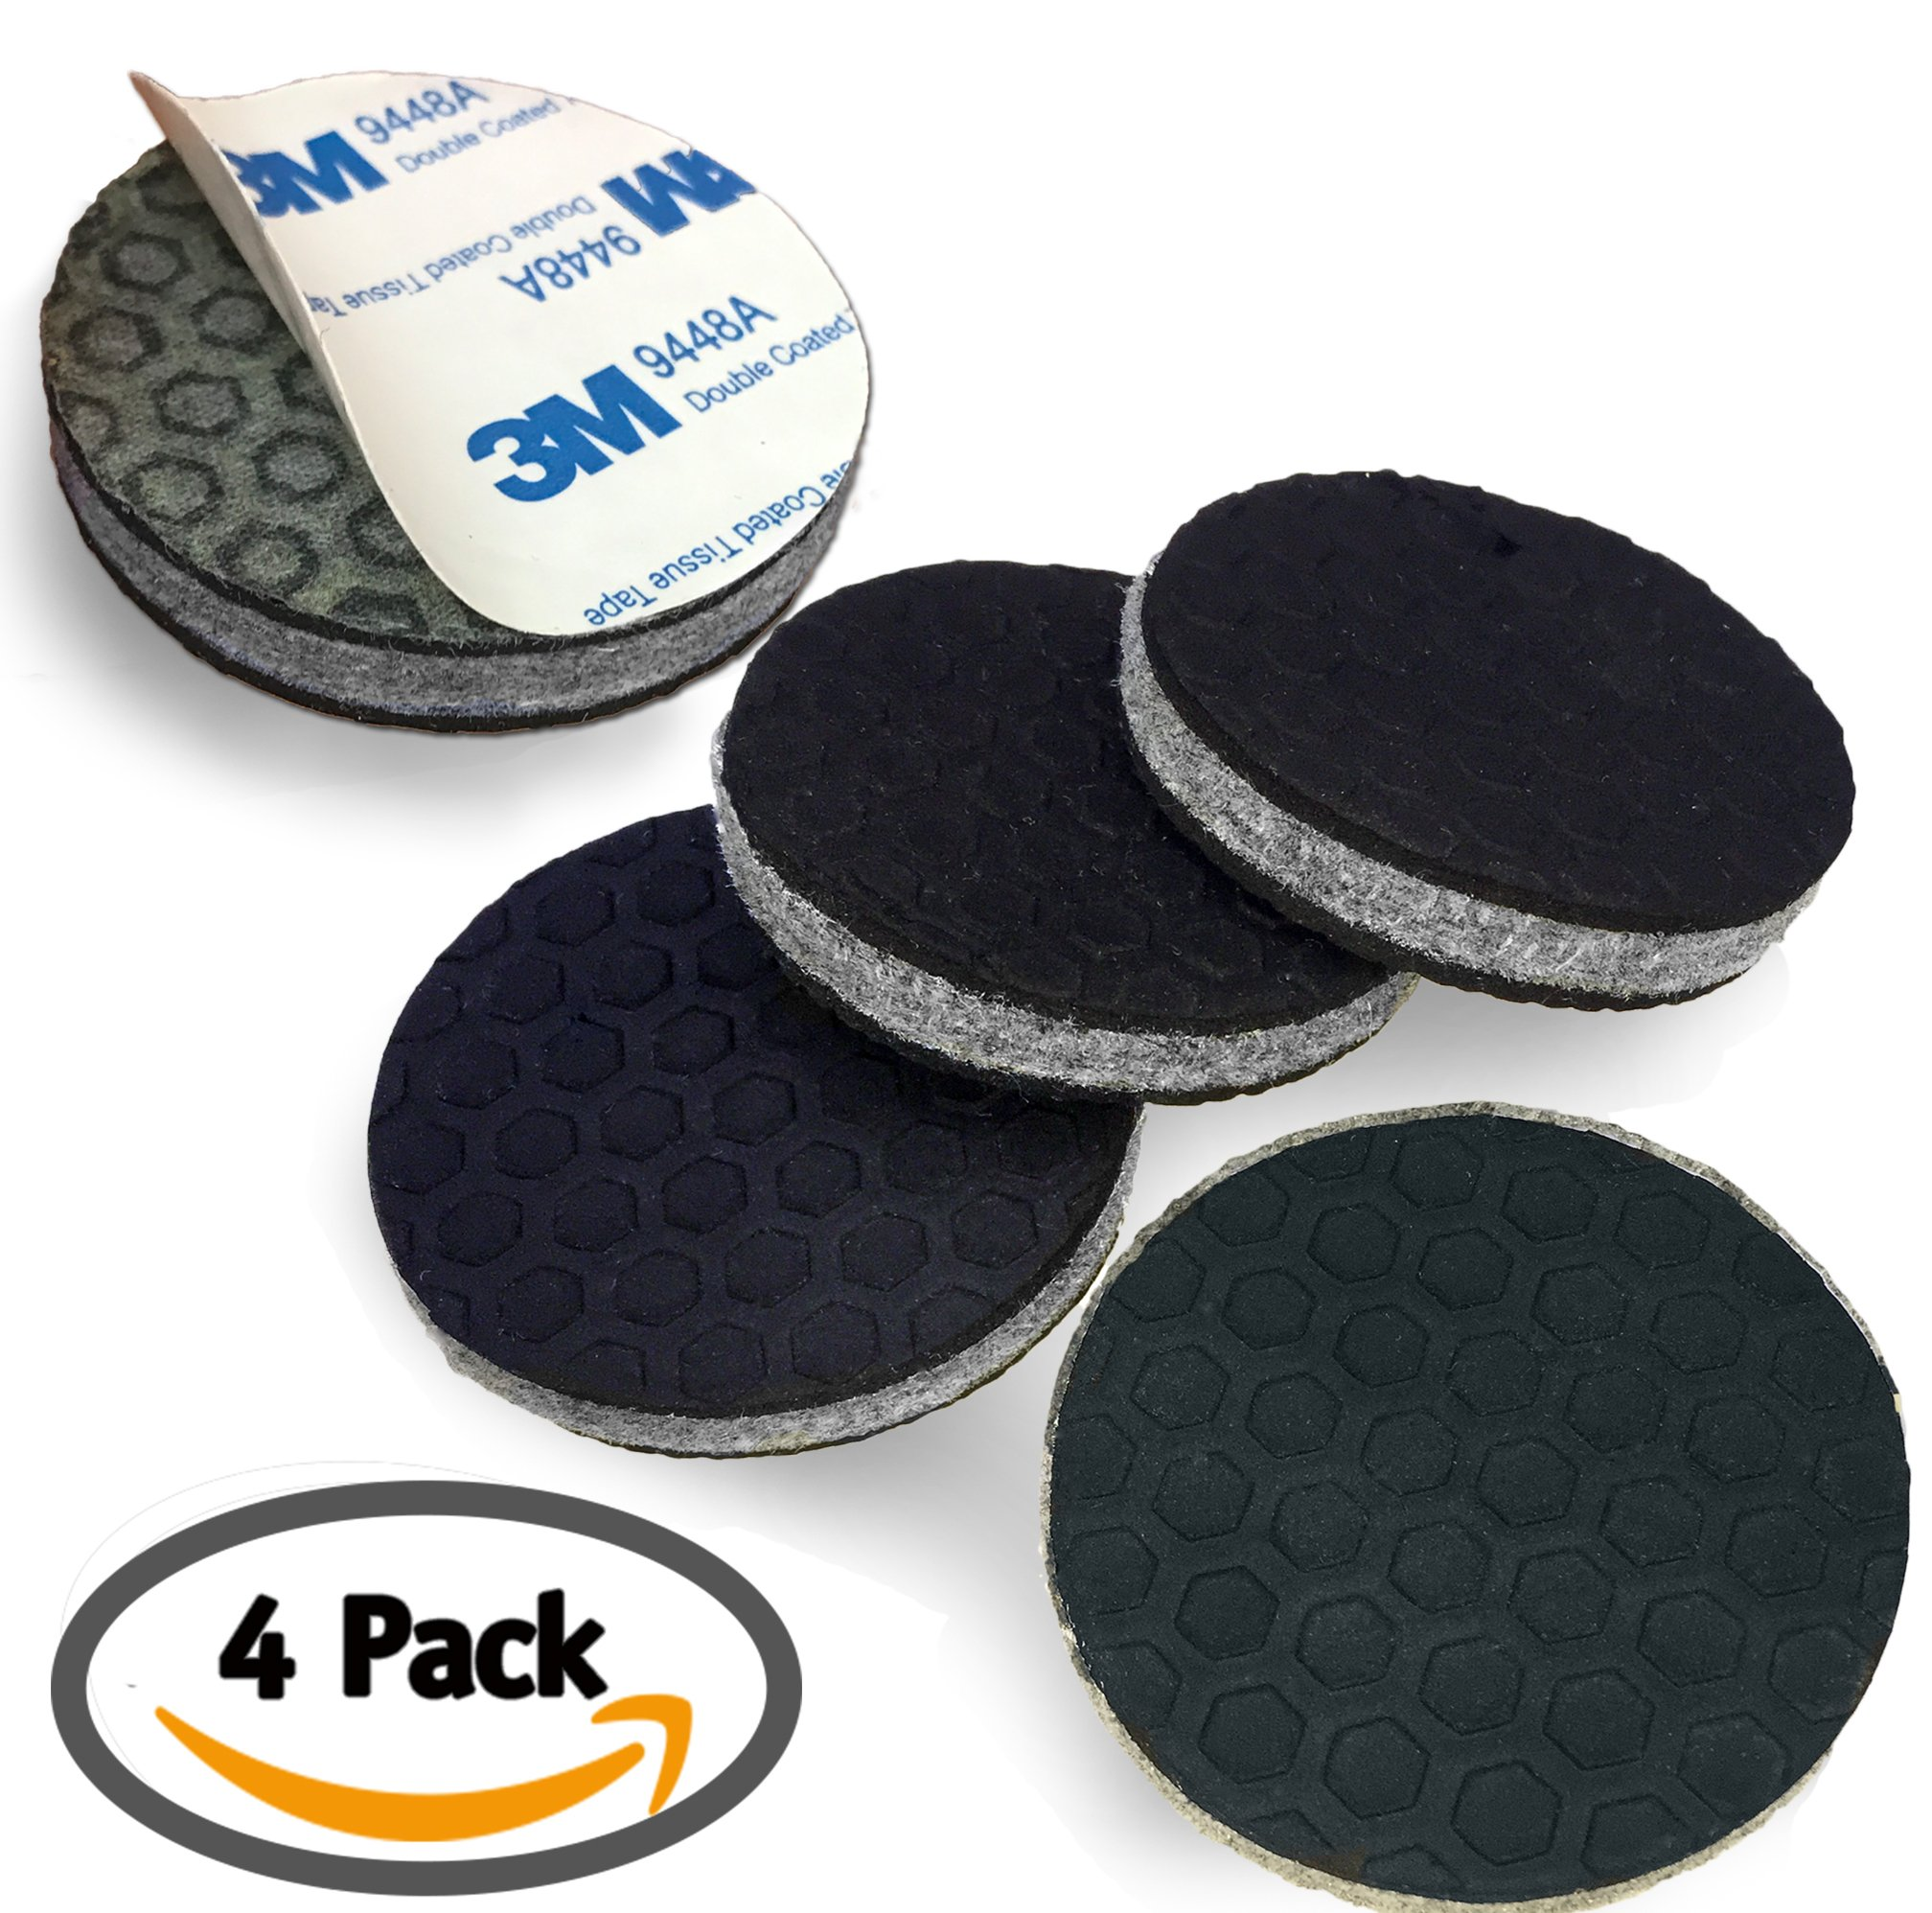 """""""SlipToGrip"""" Non Slip Furniture Pad Grippers - (4 Pack) Extra Large 3"""" Round with Adhesive Side - Furniture Non-Slip Pads with 3/8"""" Heavy Duty Felt Core. No Nails. Patent Pending."""